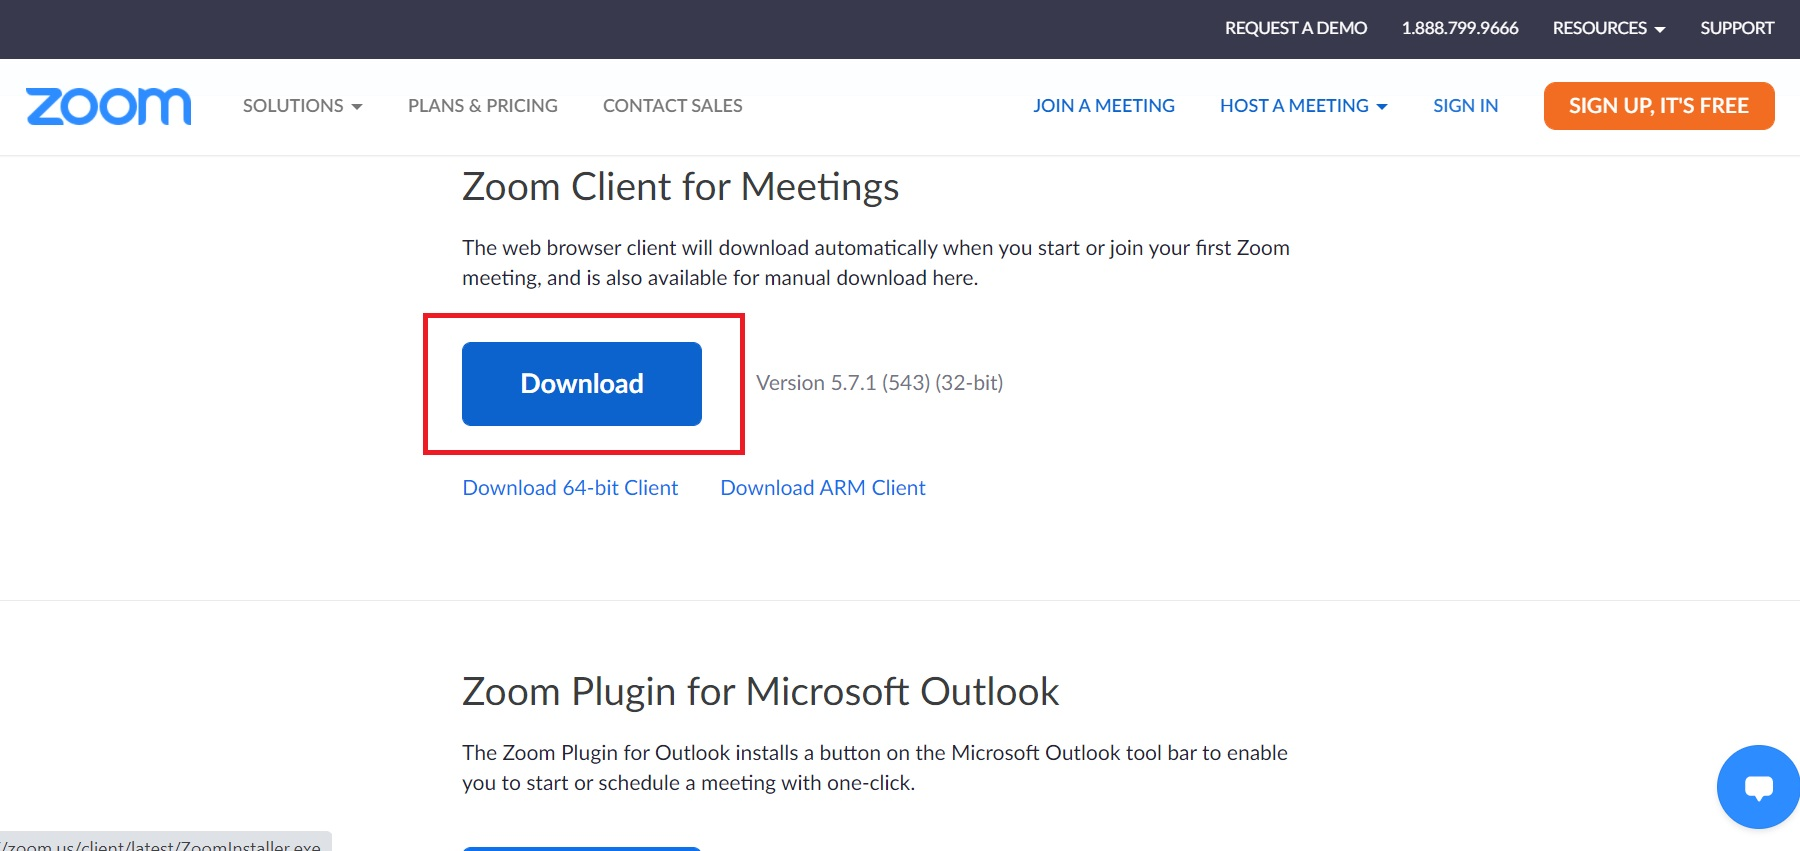 Click on Download button under Zoom client for meetings